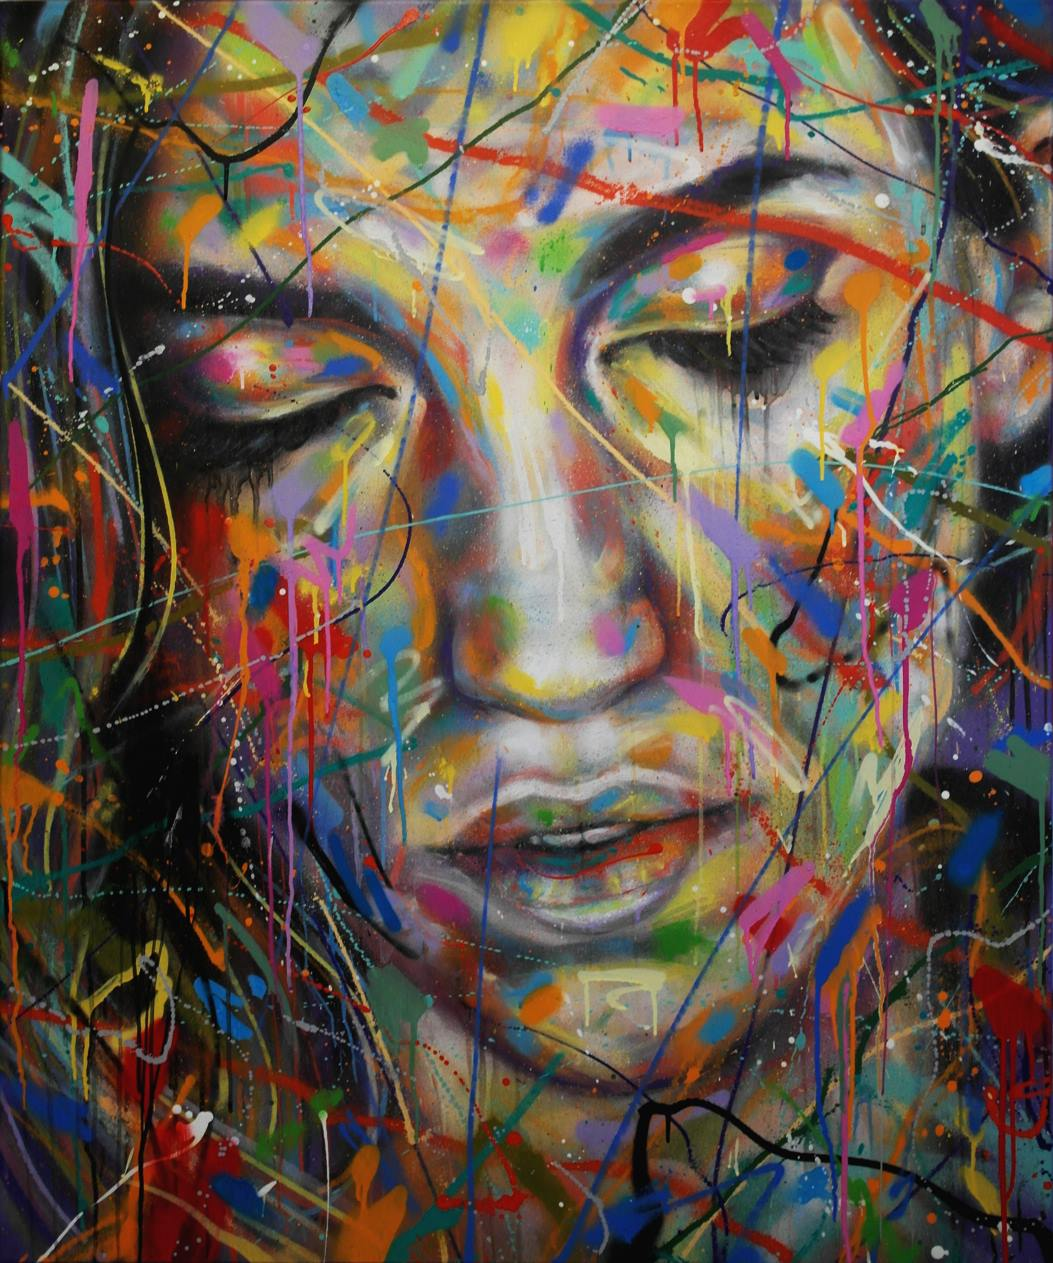 David-Walker-art-illustration 5